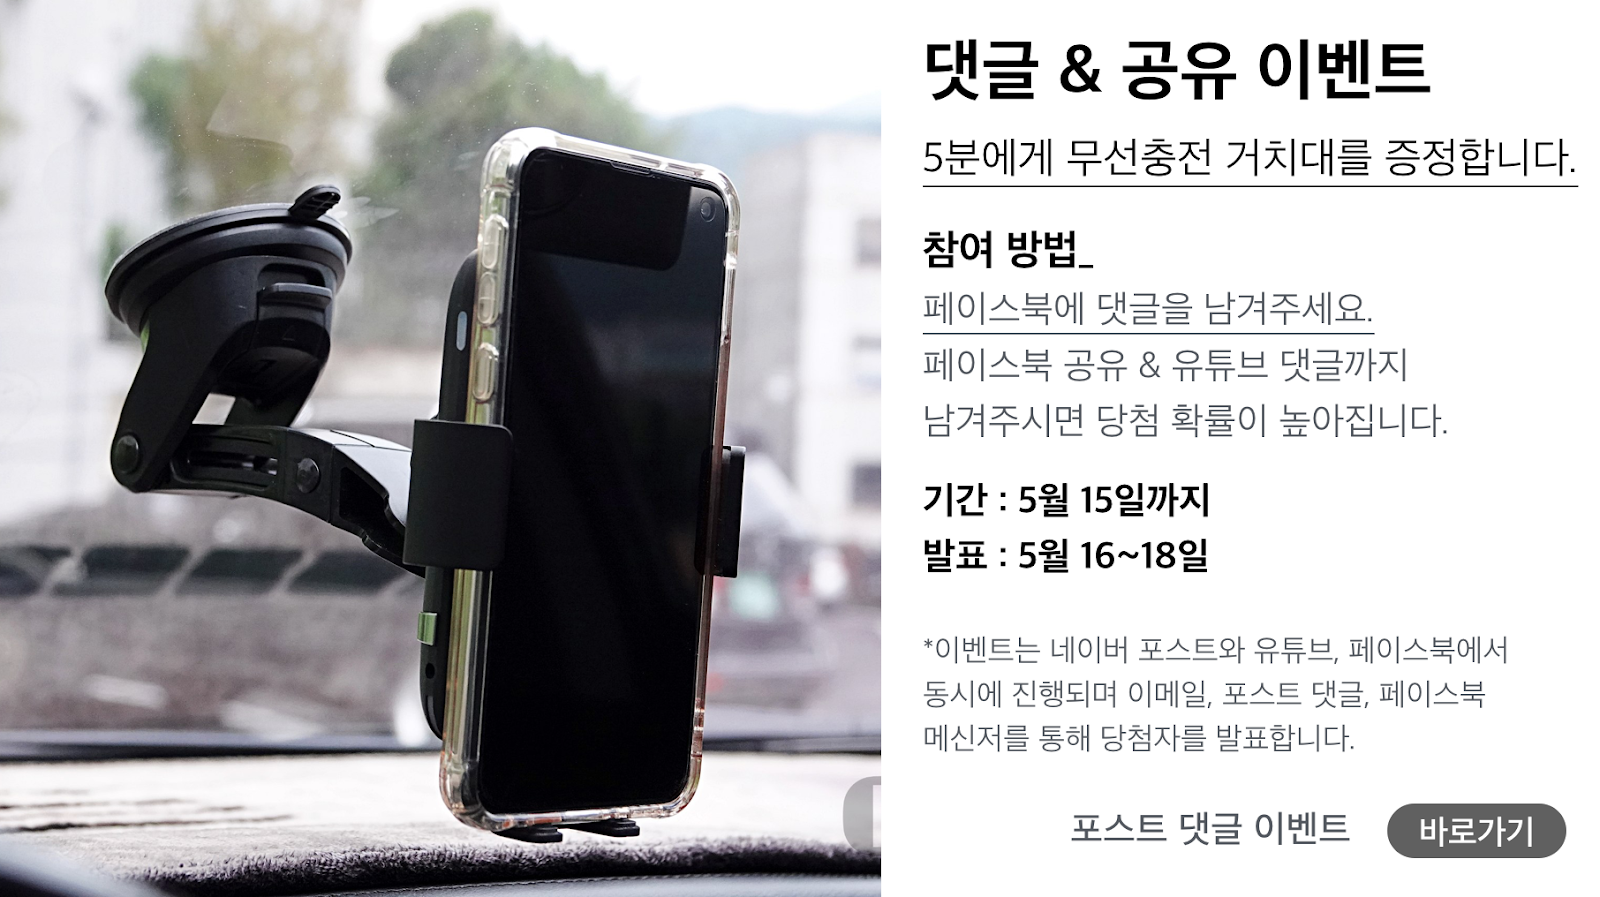 http://naver.me/IDYeOSLl